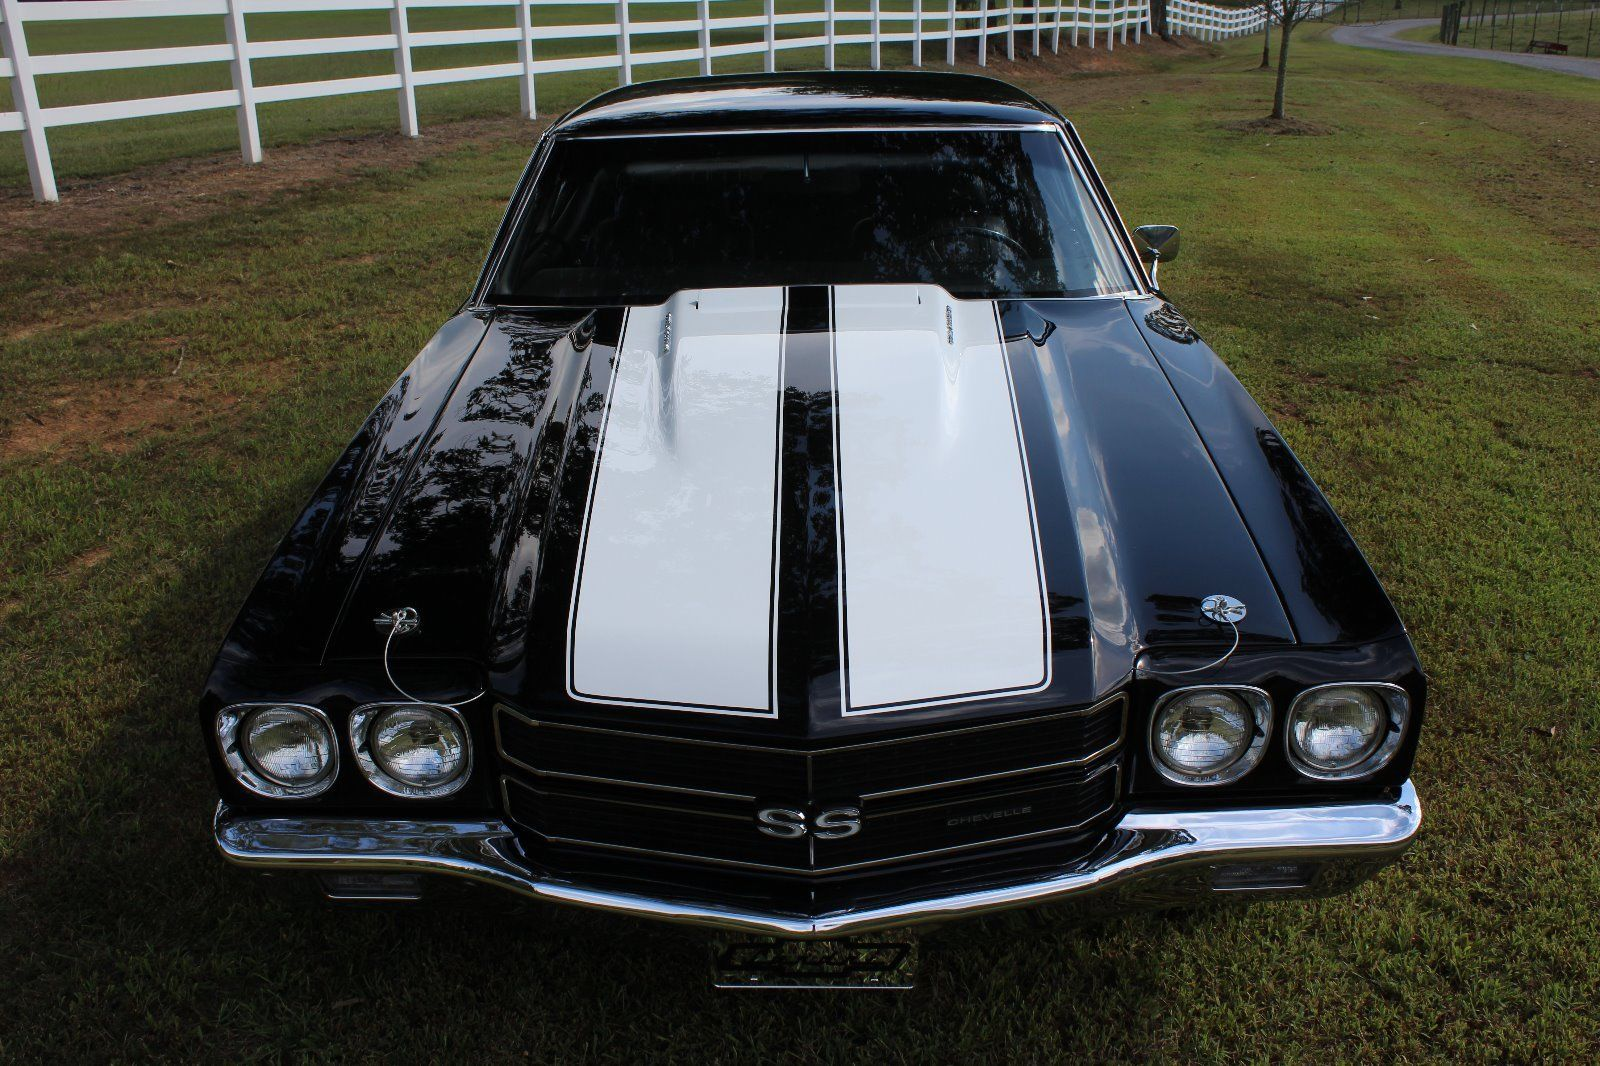 1970 chevrolet chevelle super sport project cars for sale. Black Bedroom Furniture Sets. Home Design Ideas